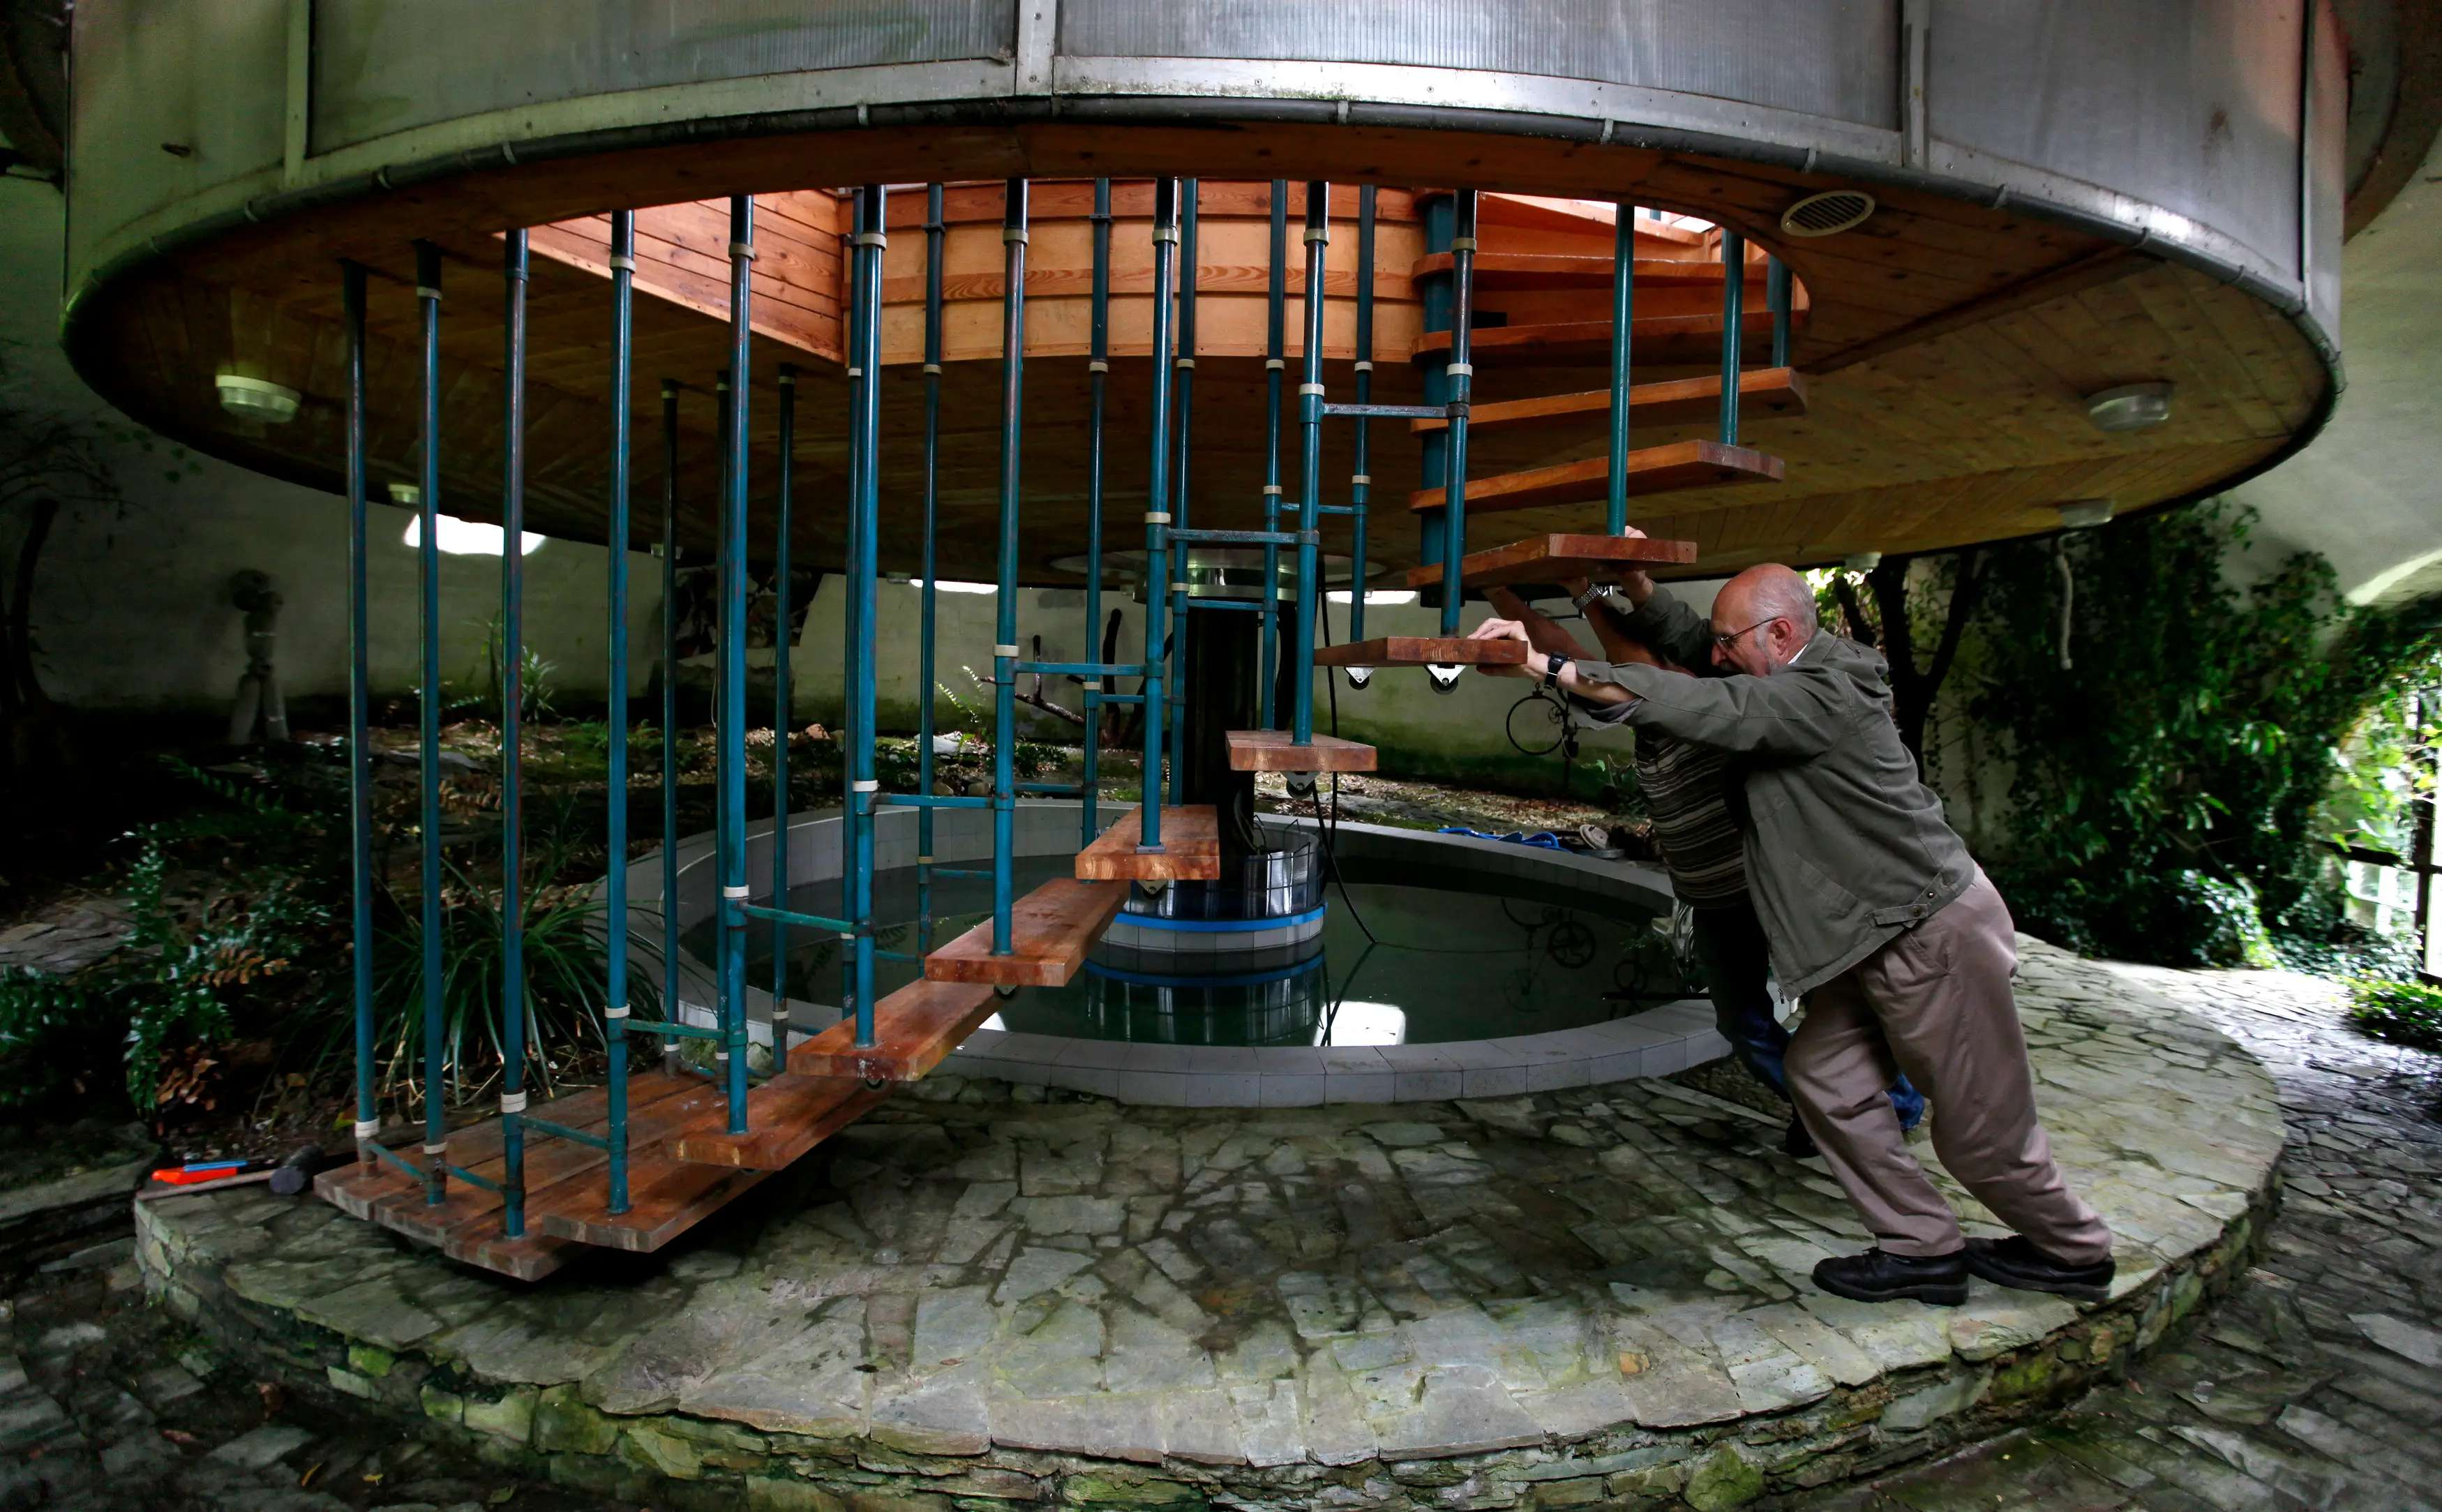 73-year-old builder Bohumil Lhota created a turning house in a small village north of Prague, Czech Republic. He started building it in 1981, and finished in 2002. His home rotates so he can have the best view at all times, and can also move up and down.